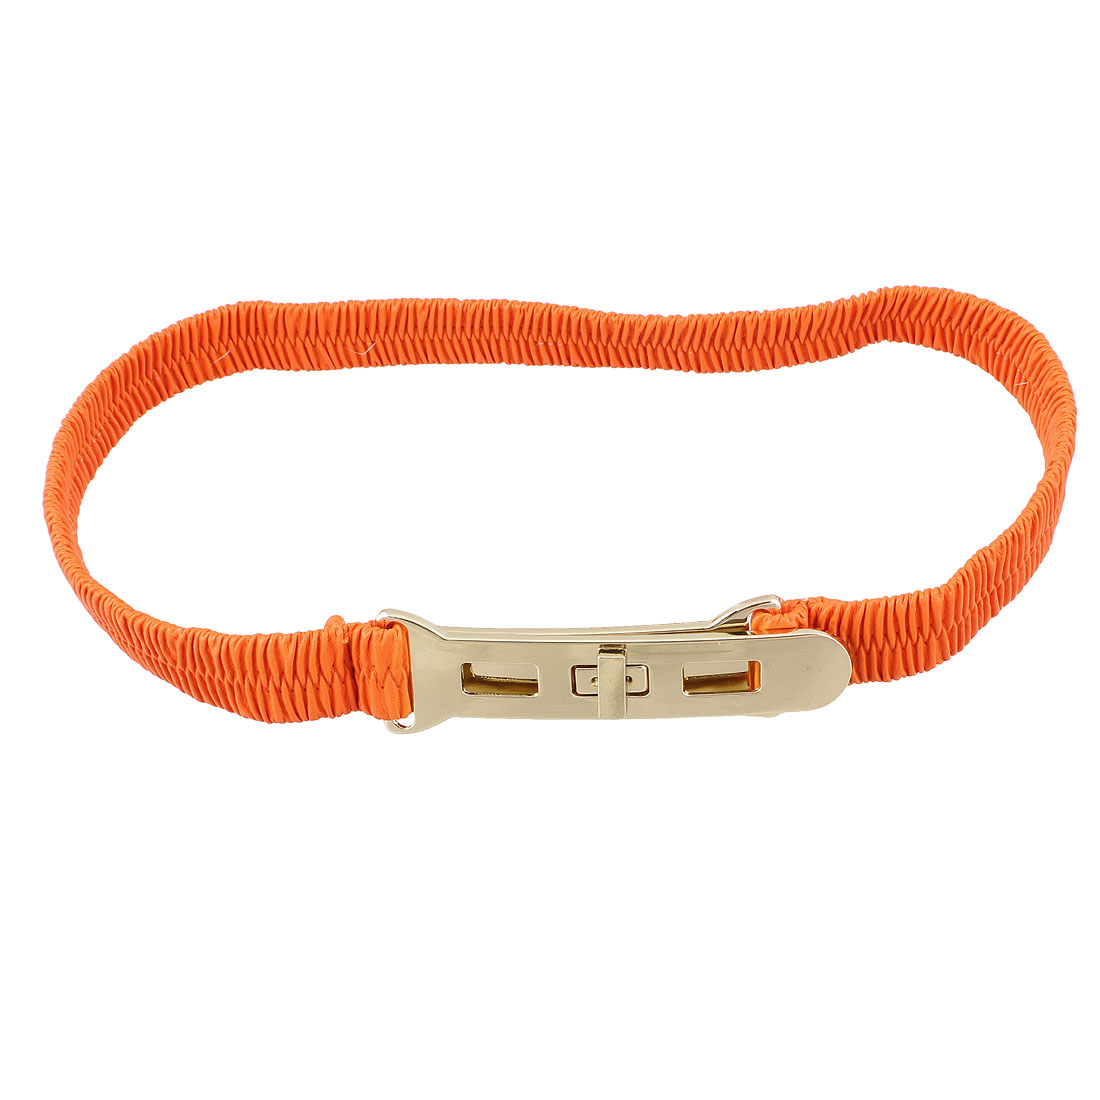 Metal Turn Lock Buckle Orange Elastic Waist Cinch Belt for Lady